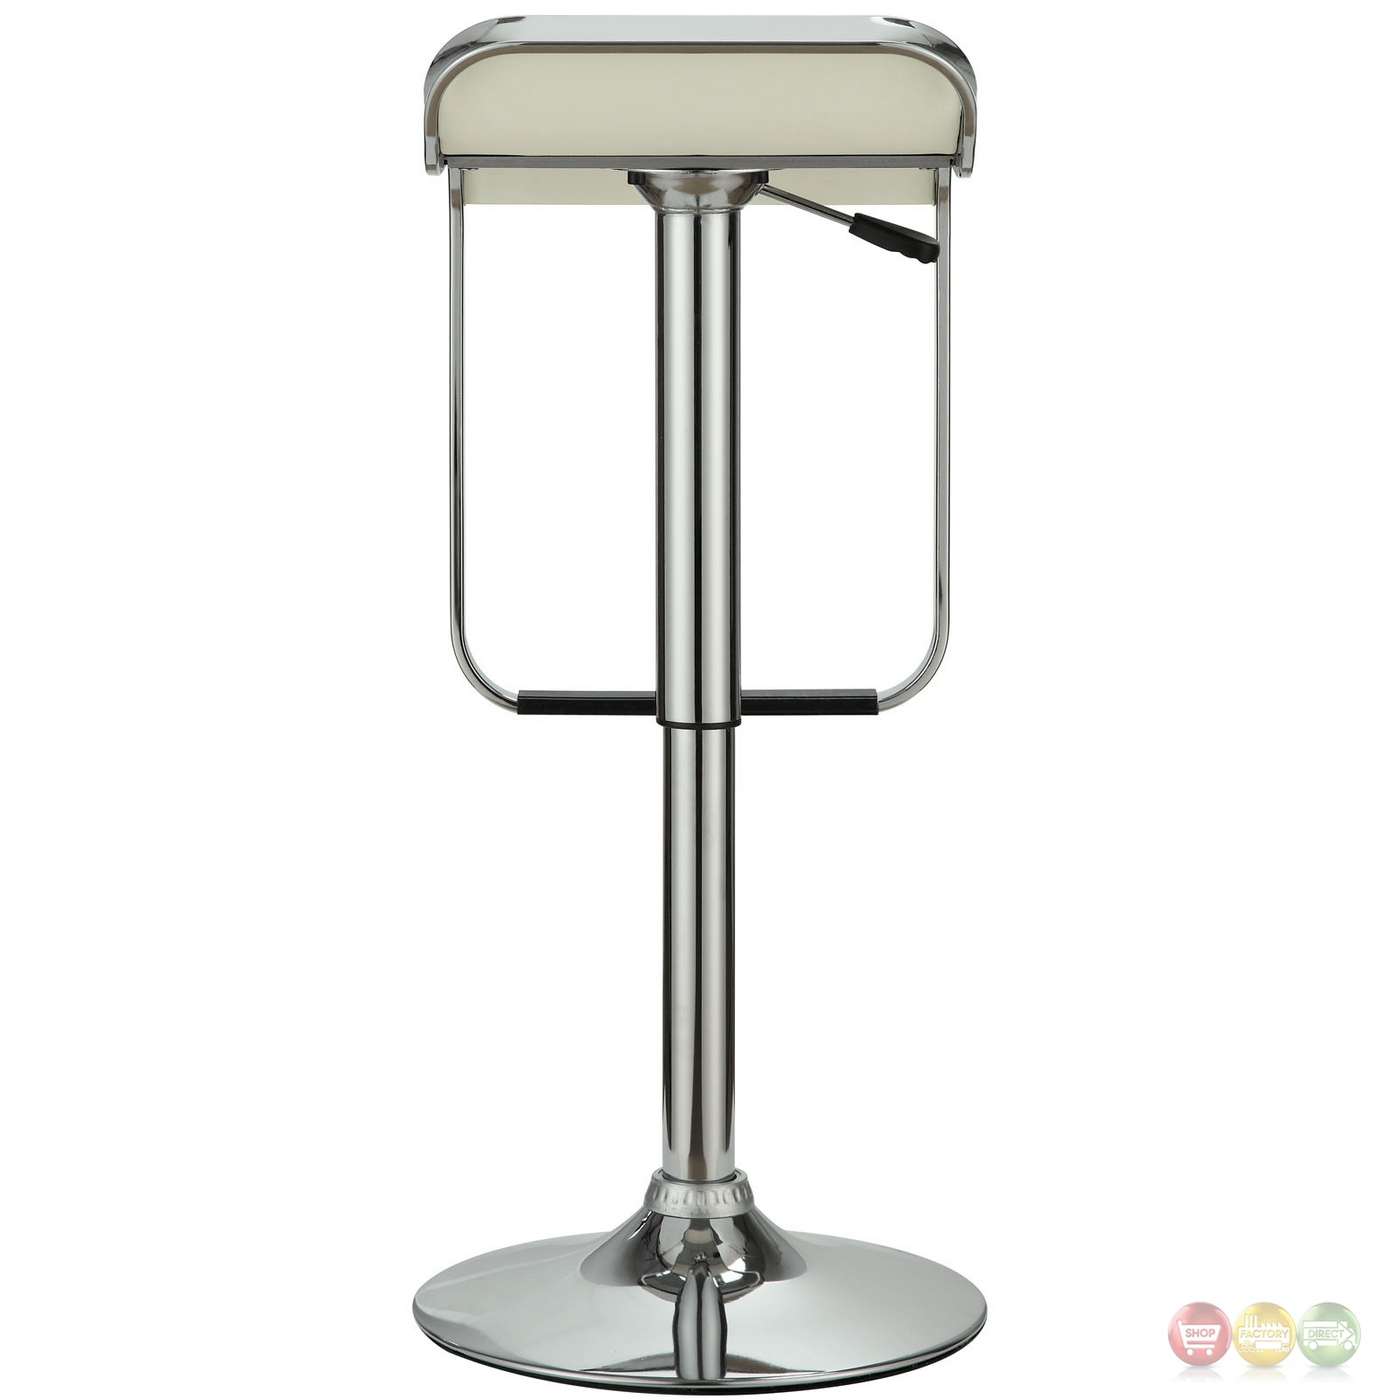 Modern White Bar Stools Lem Modern Backless Vinyl Bar Stool With Foot Rest And